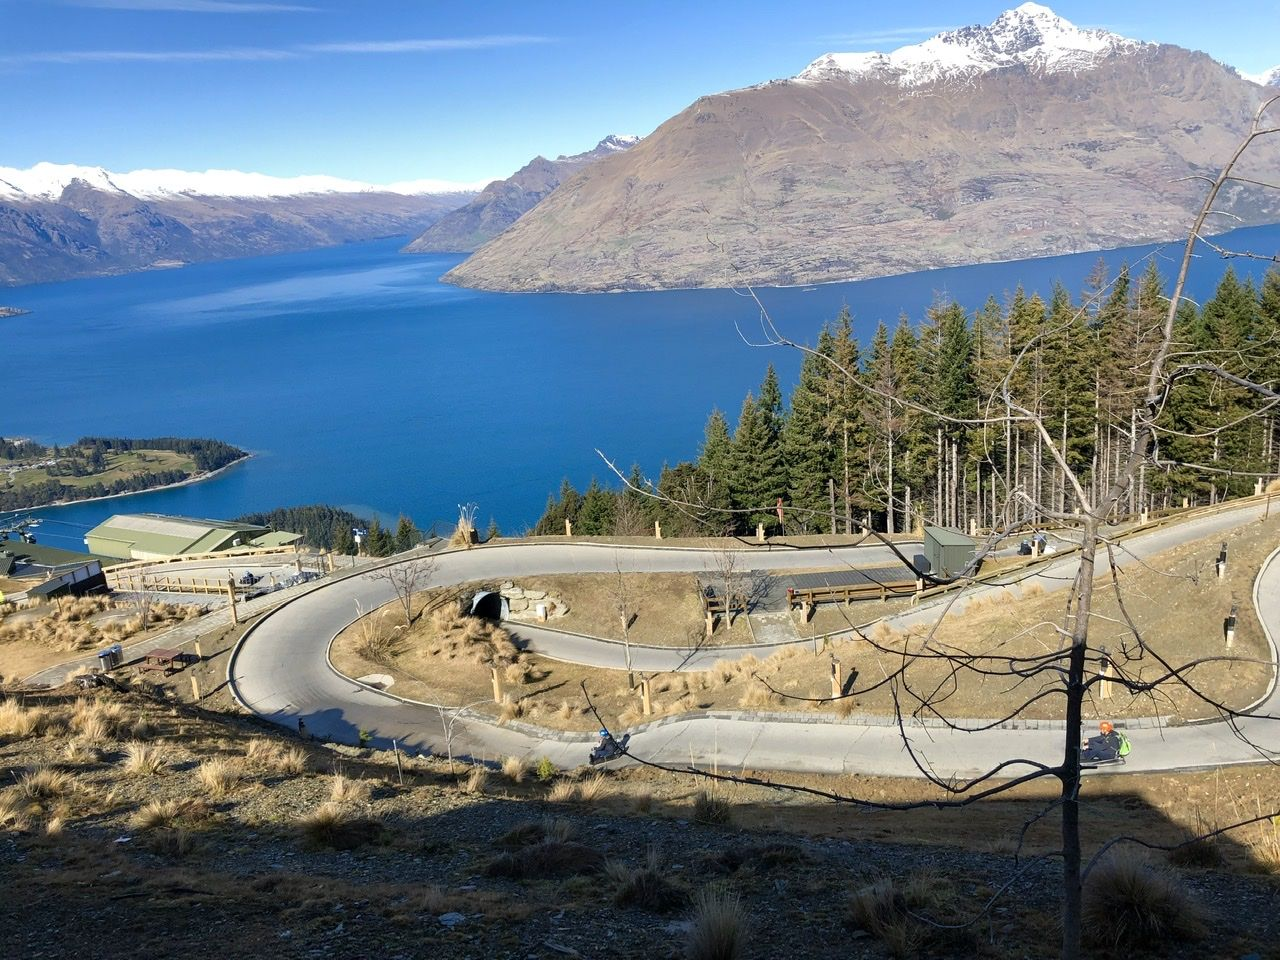 Luge at the top of the mountain